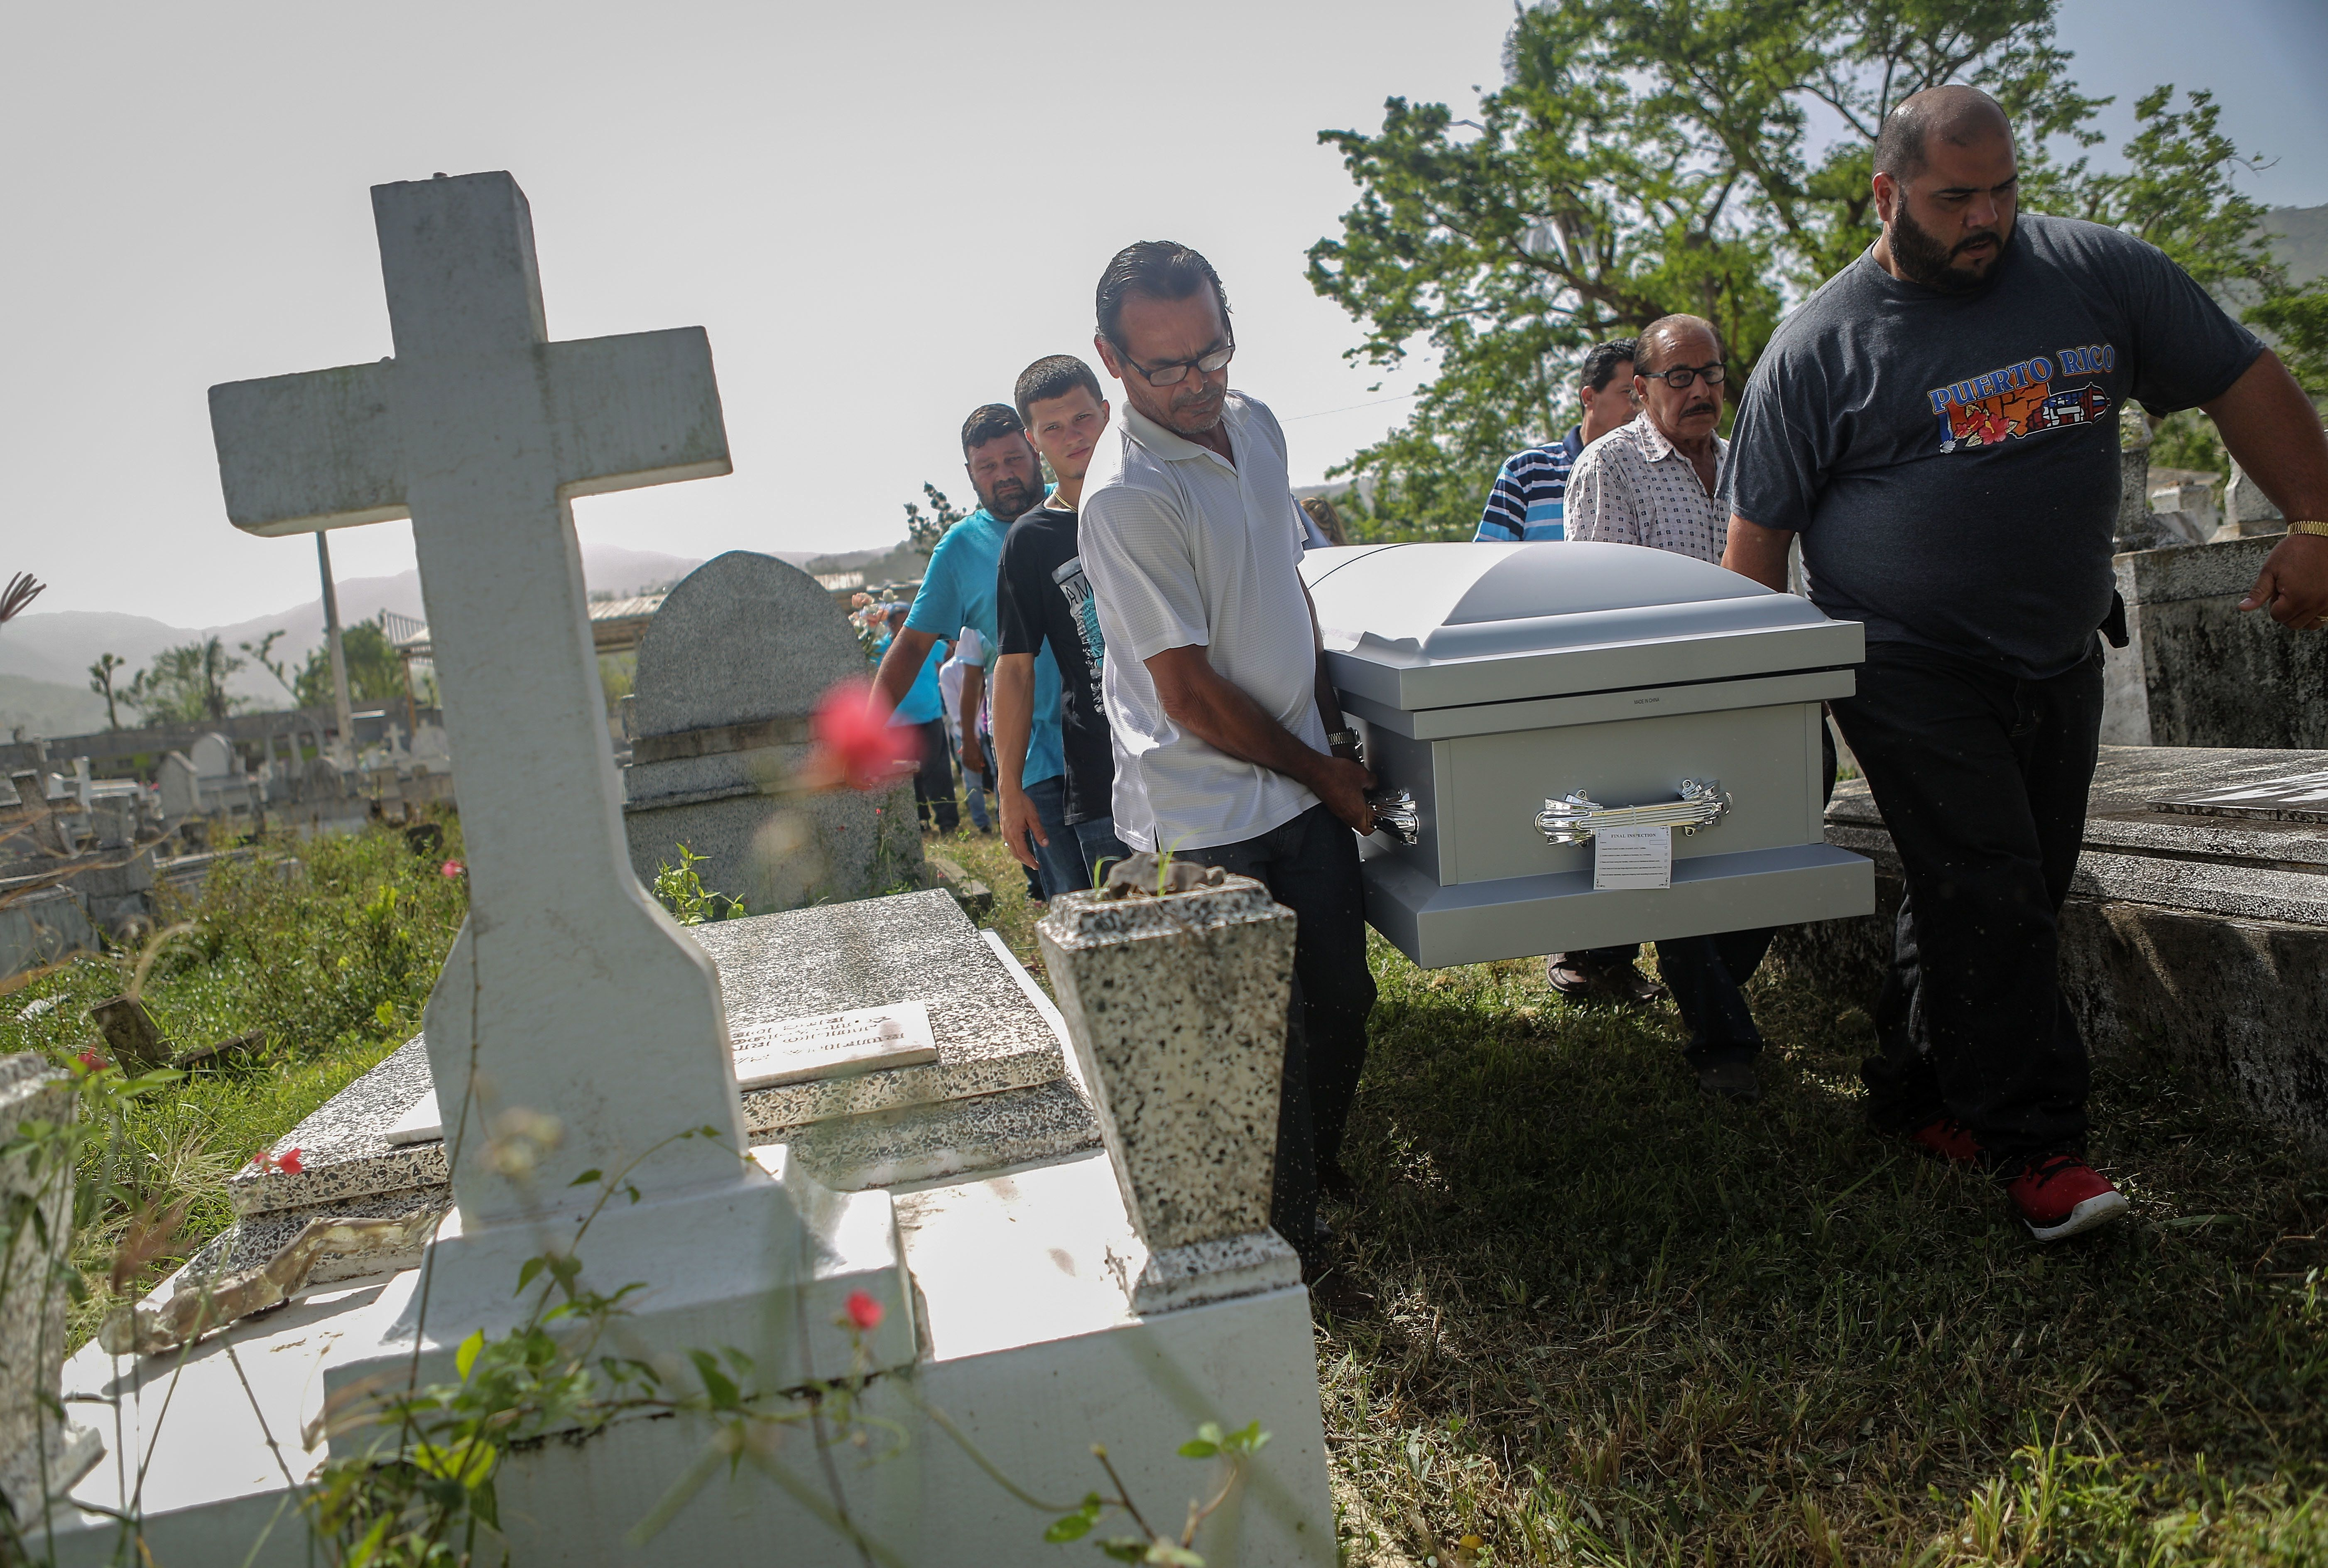 Mourners carry the coffin of Wilfredo Torres Rivera, 58, who died in October 2017 after jumping off a...